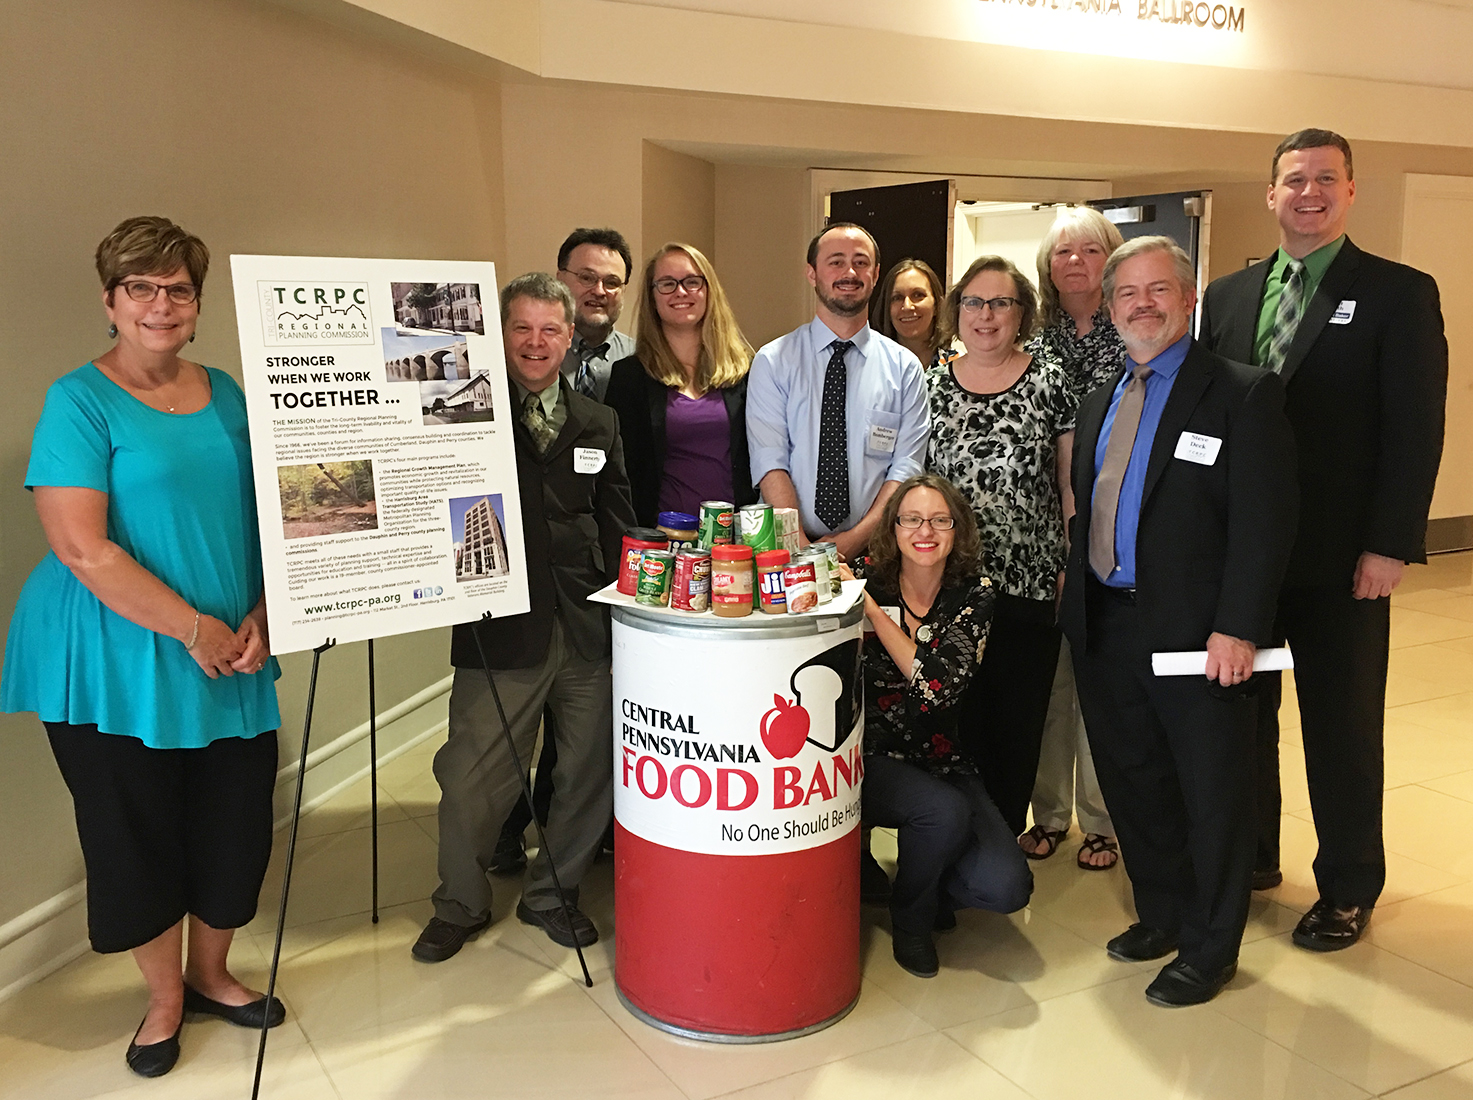 Thanks to everyone who donated to the food drive benefiting the Central PA Food Bank at our annual luncheon on May 3. You brought 168 pounds of food -- enough to put 140 meals on local families' tables!